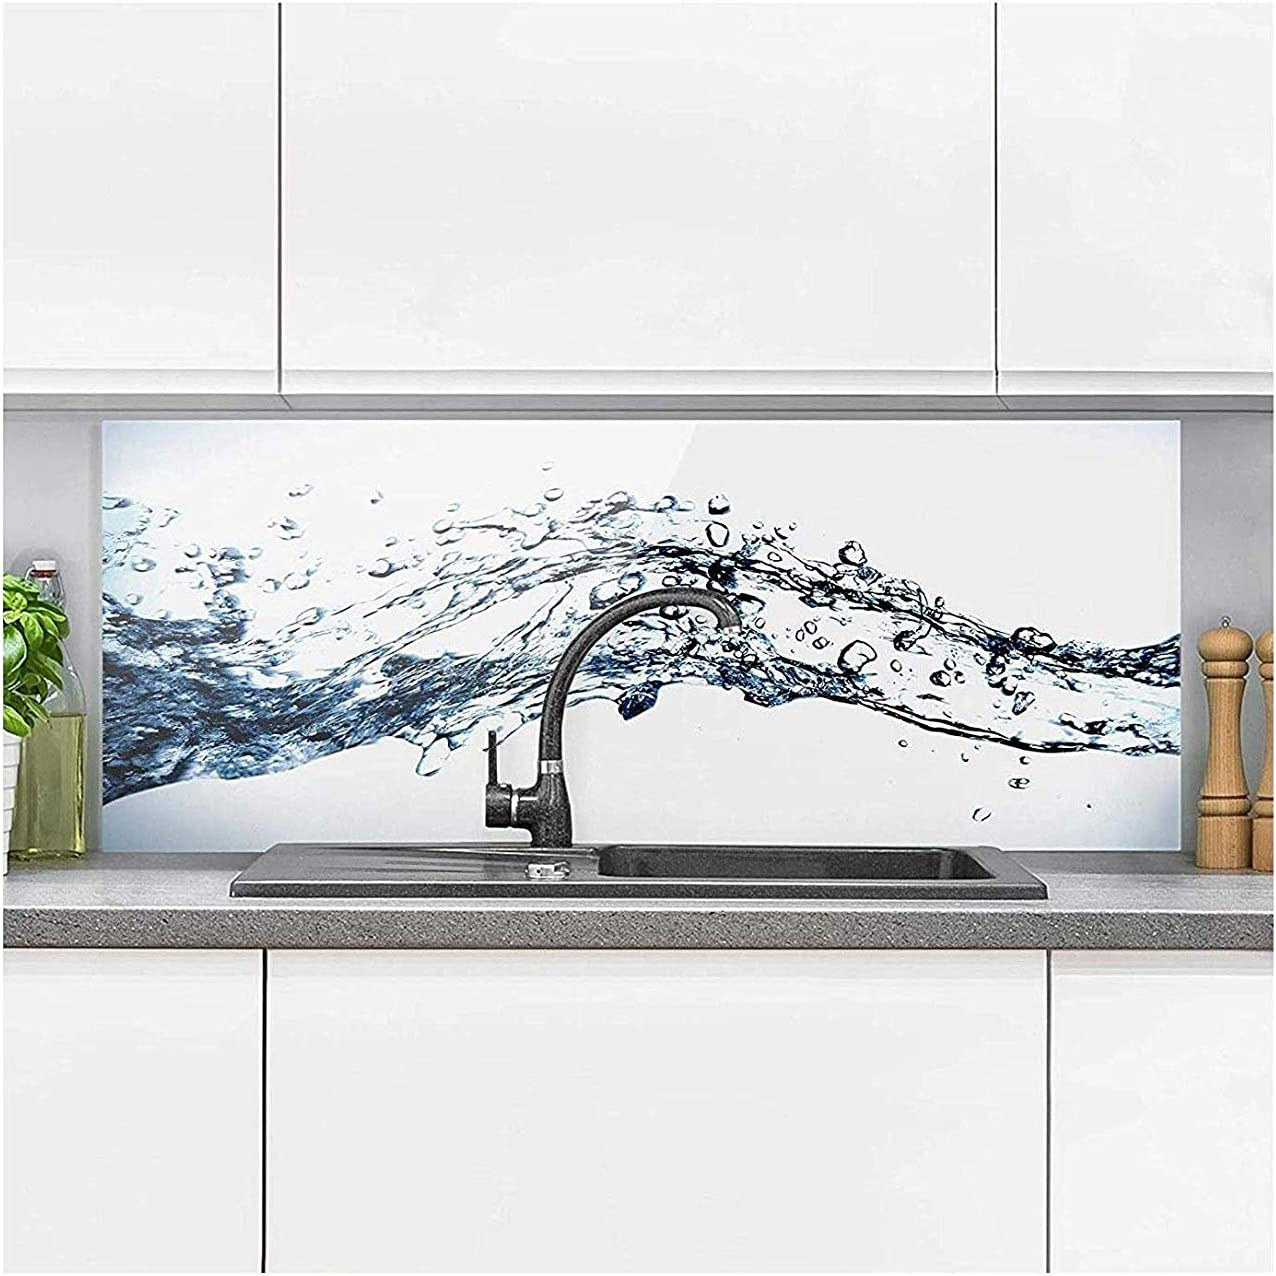 Bilderwelten Glass Splashback - Water Splash - Panoramic, Backsplash Cooker Splashback Protector Panel Decorative Splashback Panel, Dimension HxW: 40cm x 100cm